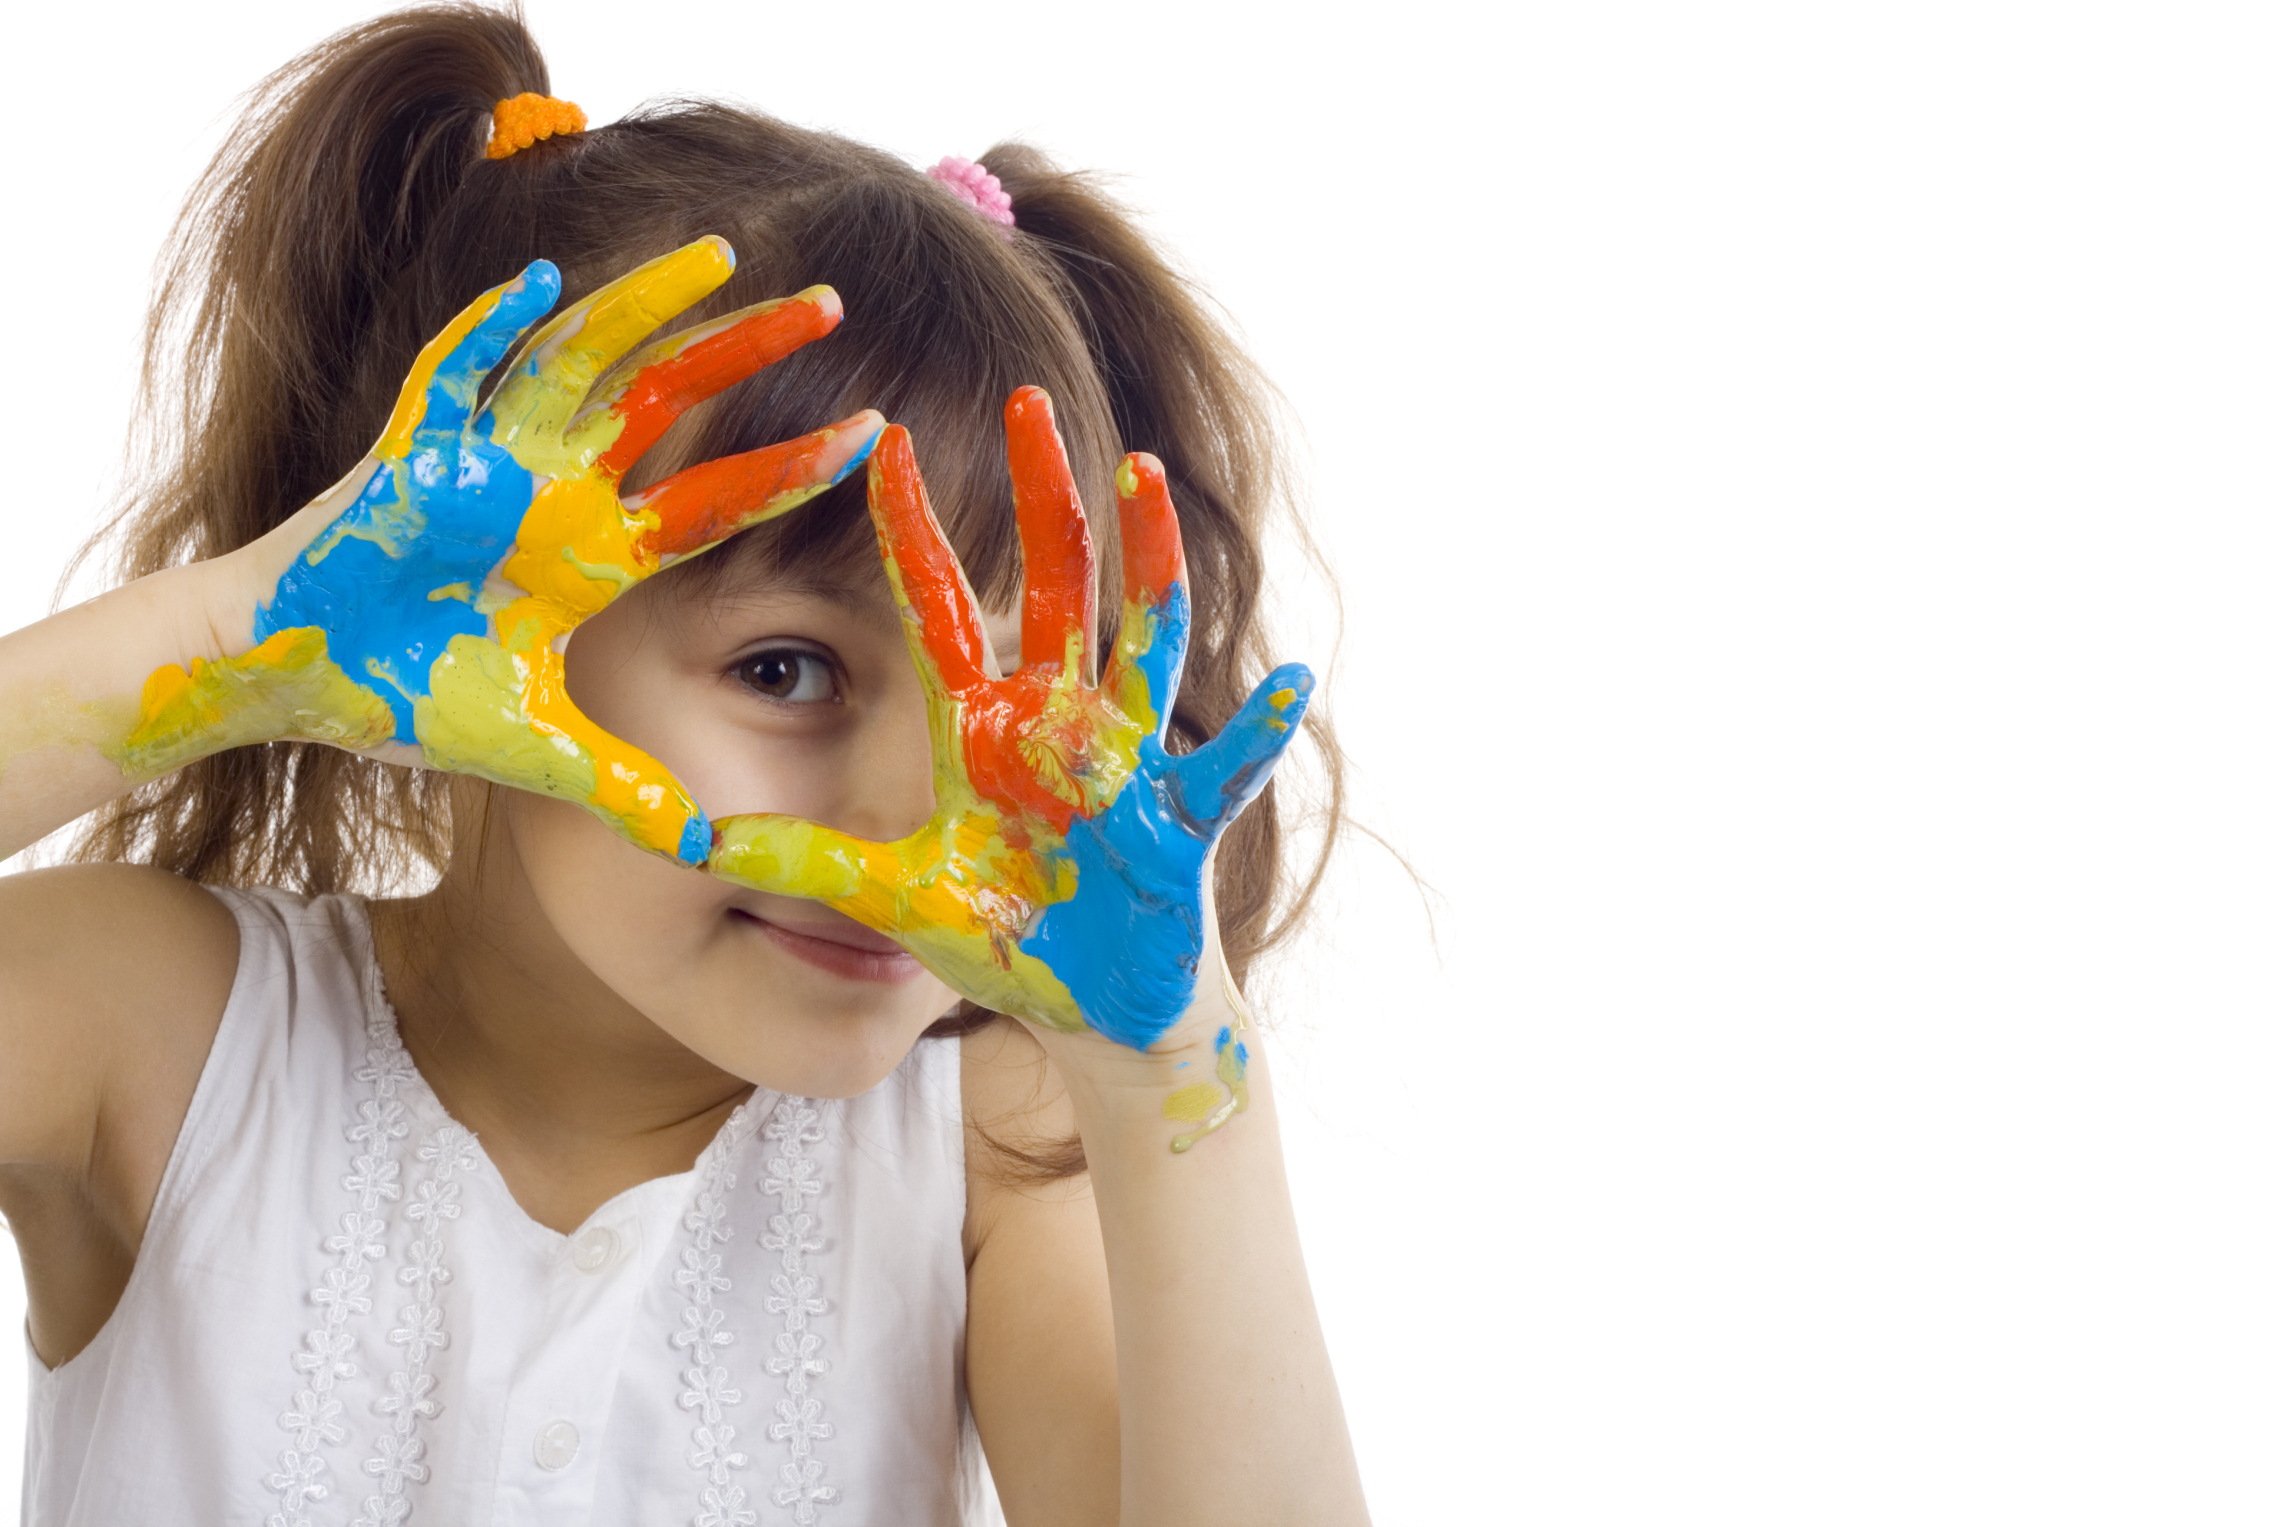 Read more about the article Toddler Development